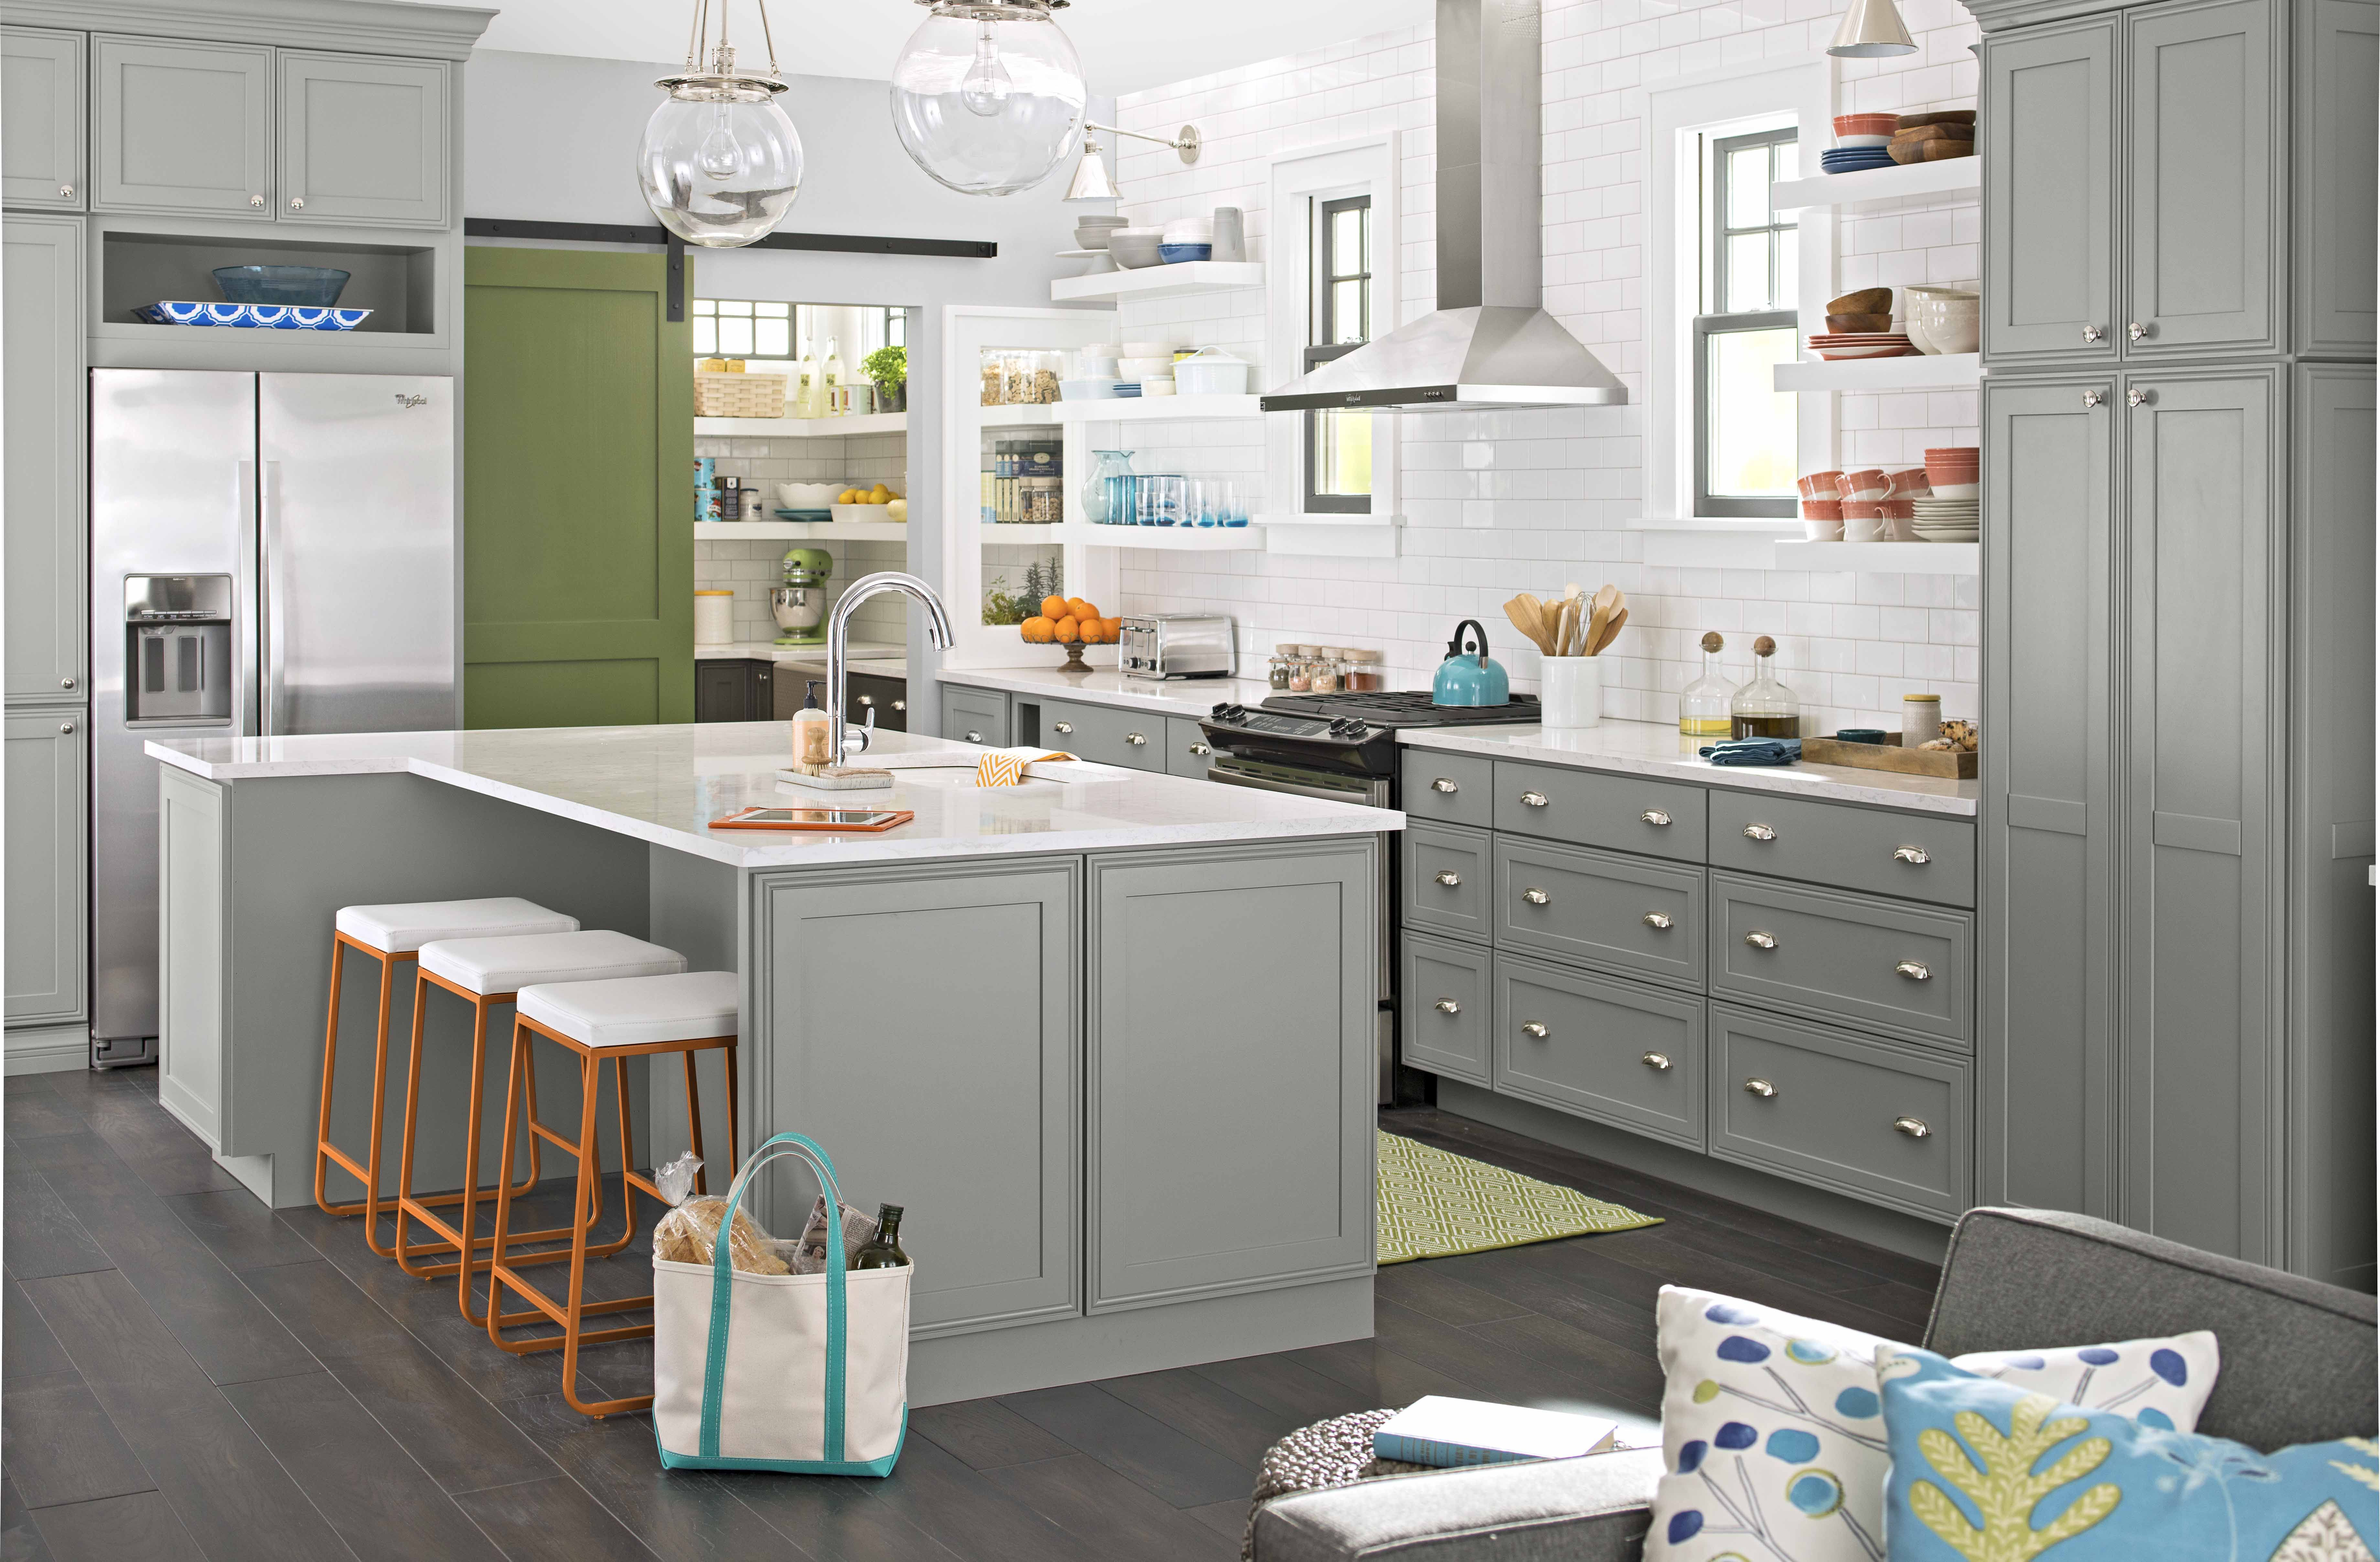 Great 4 Kitchen Trends + How To Use Them